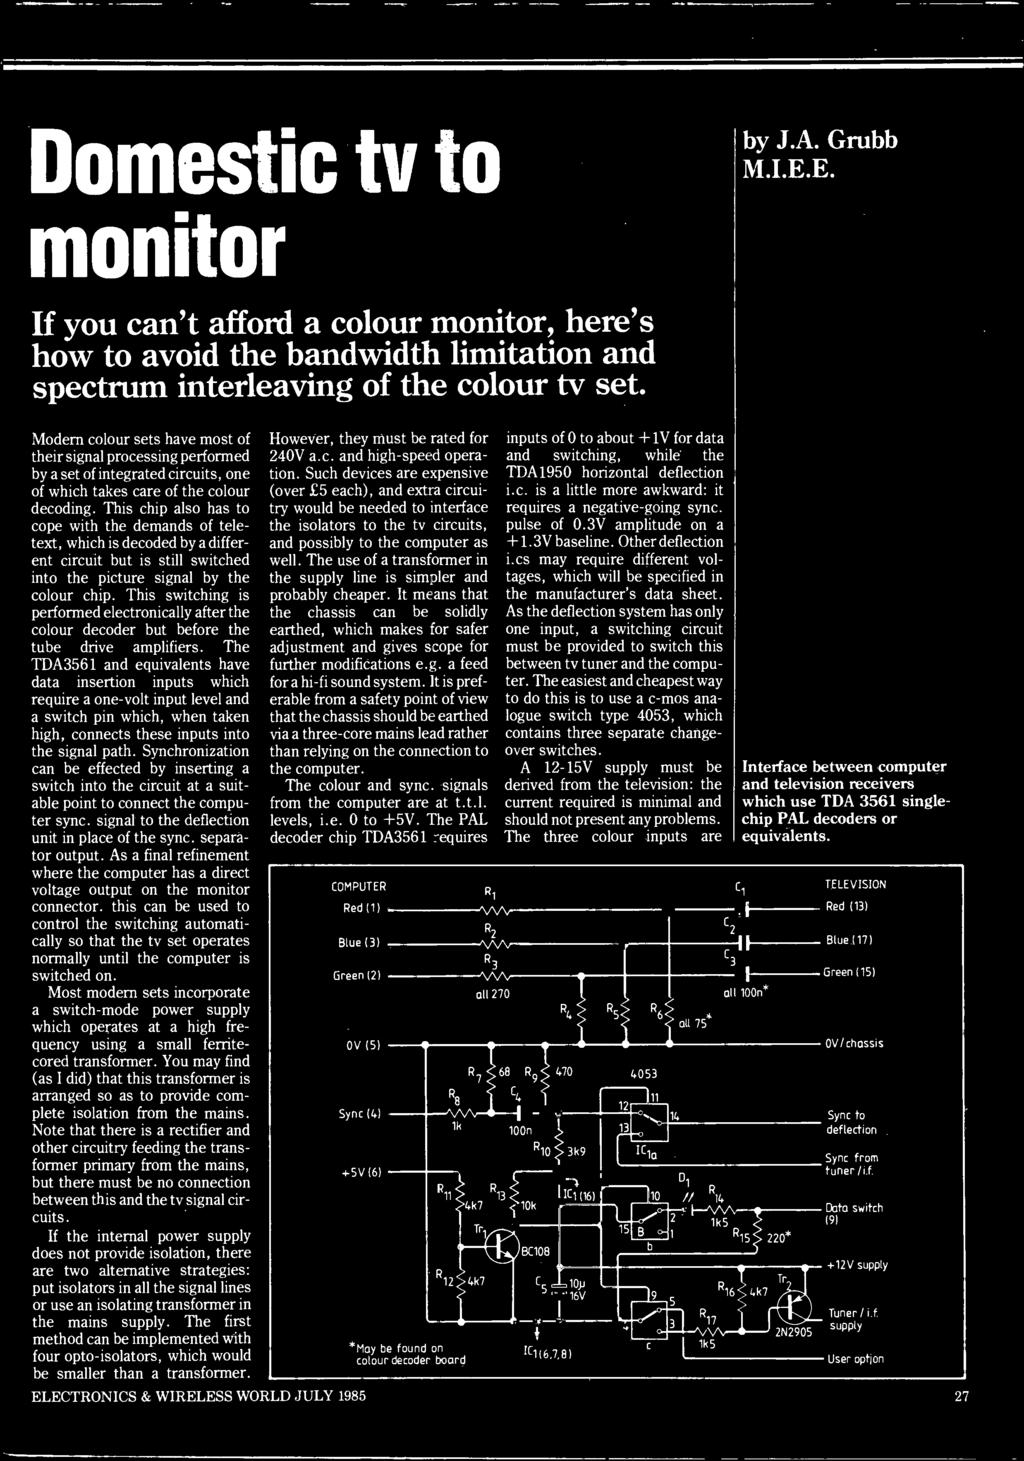 Lectronics For Oung People Enlarger Lamp Power Controller Pdf Amplifier The Circuit Uses A 14pin Package Lm380 As This Chip Also Has To Cope With Demands Of Teletext Which Is Decoded By